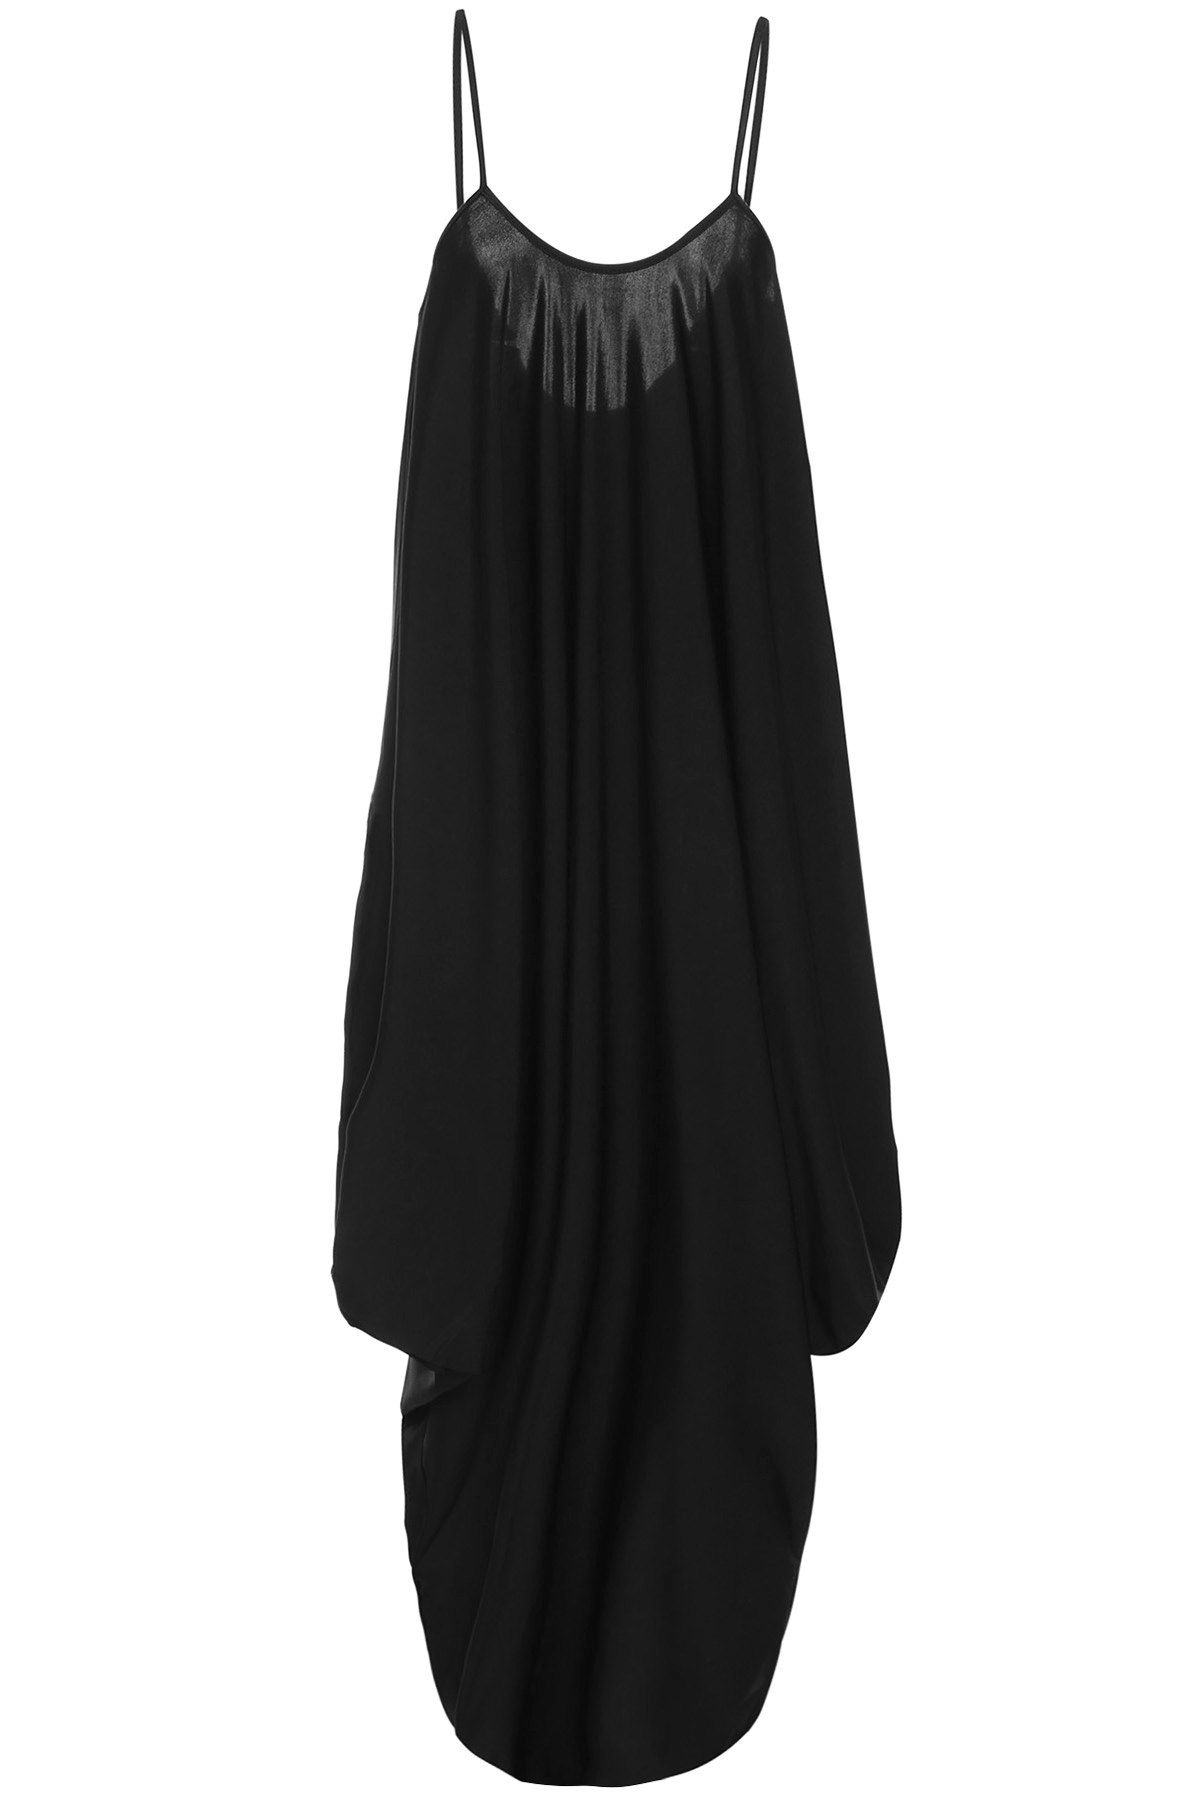 Sale Sexy Strappy Black Loose-Fitting Jumpsuit For Women